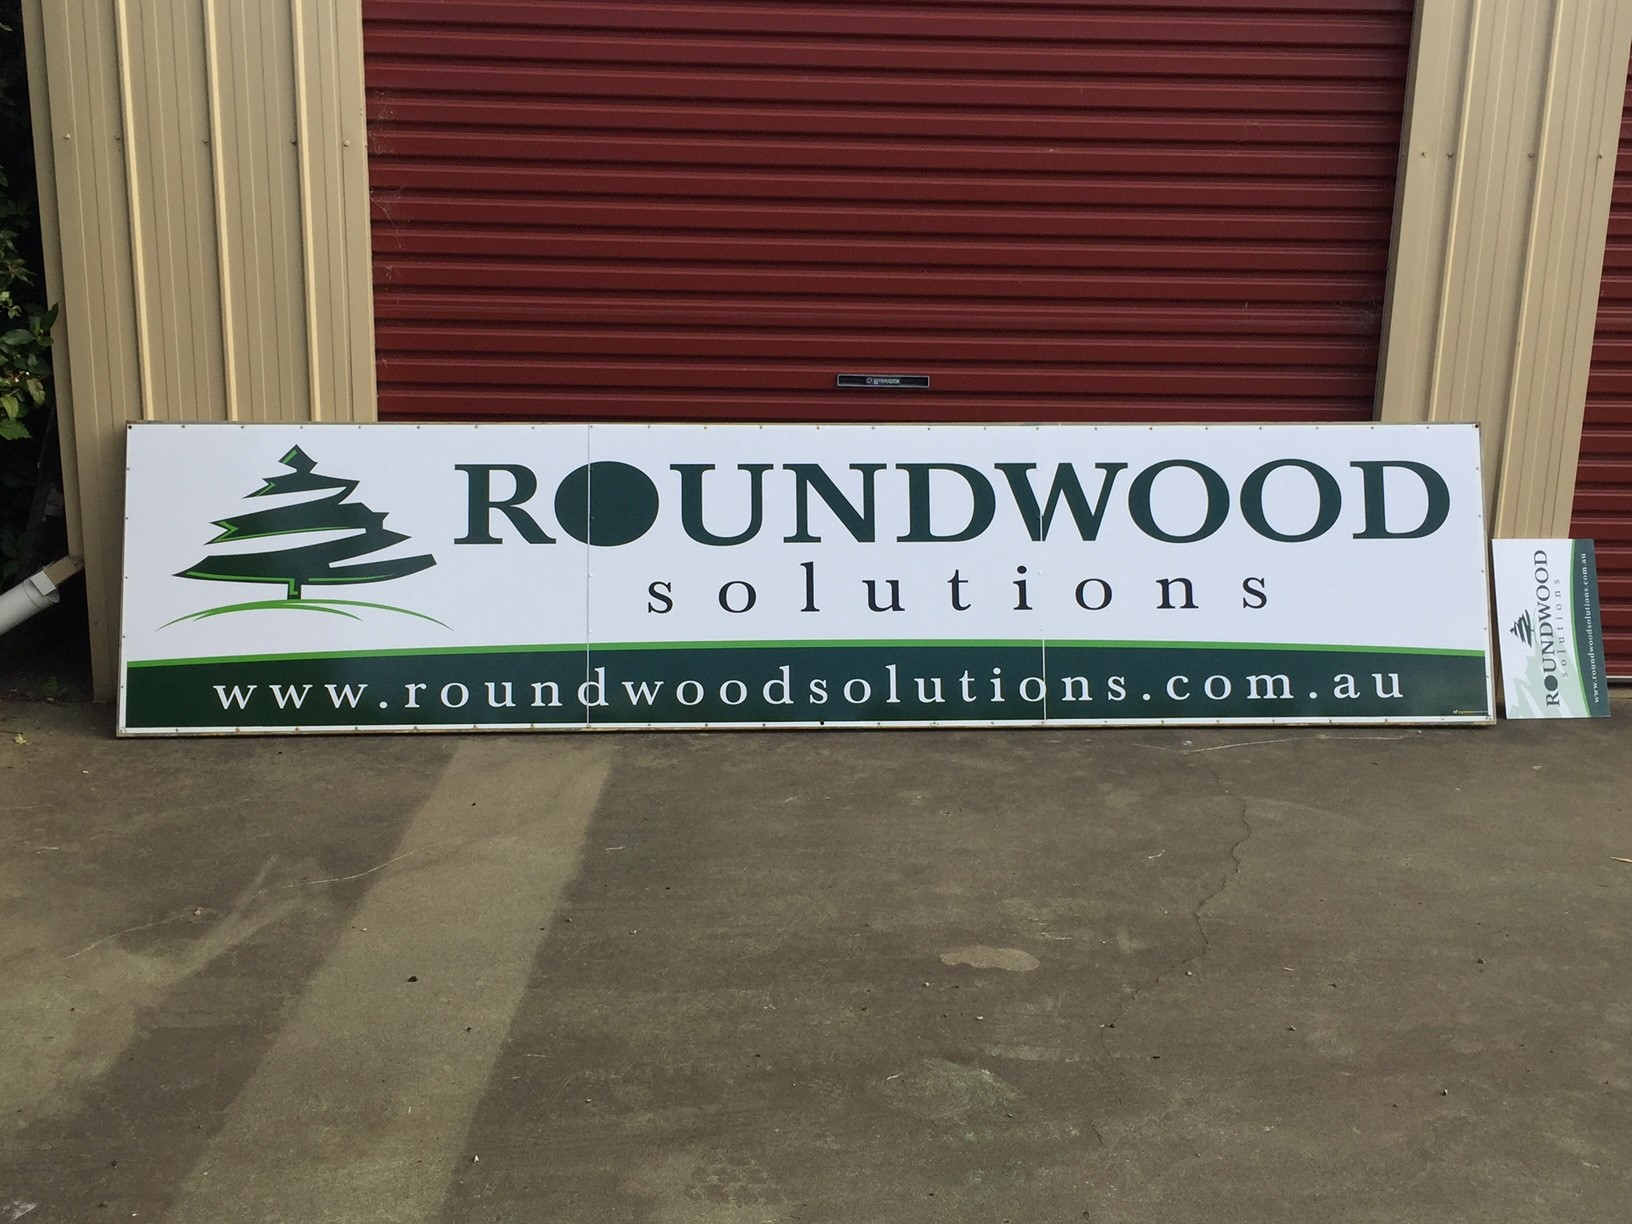 Roundwood Solutions Fence Sign